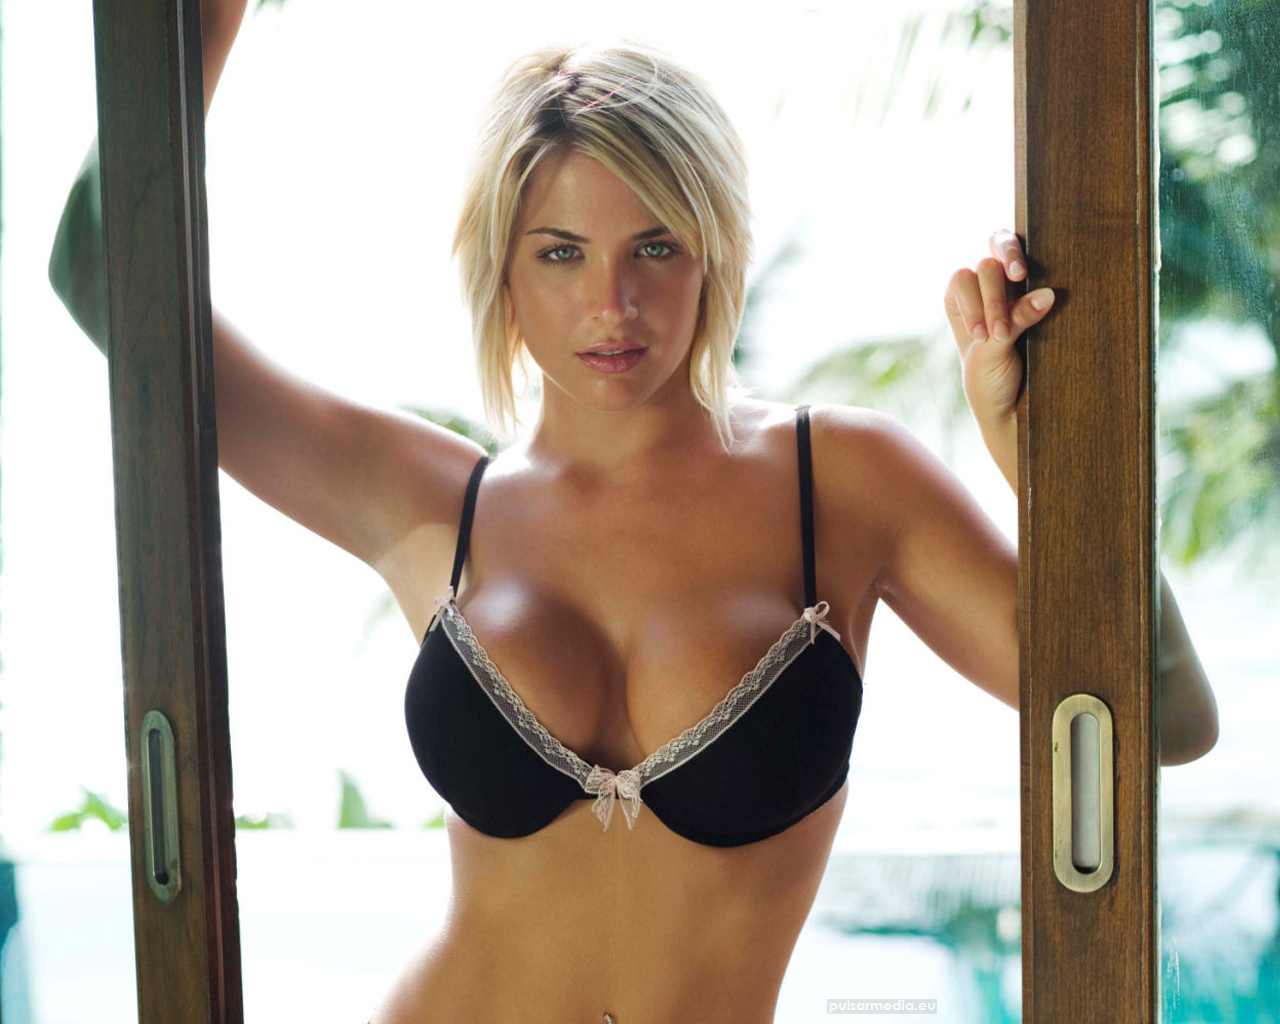 gemma atkinson image 40 - photo #22